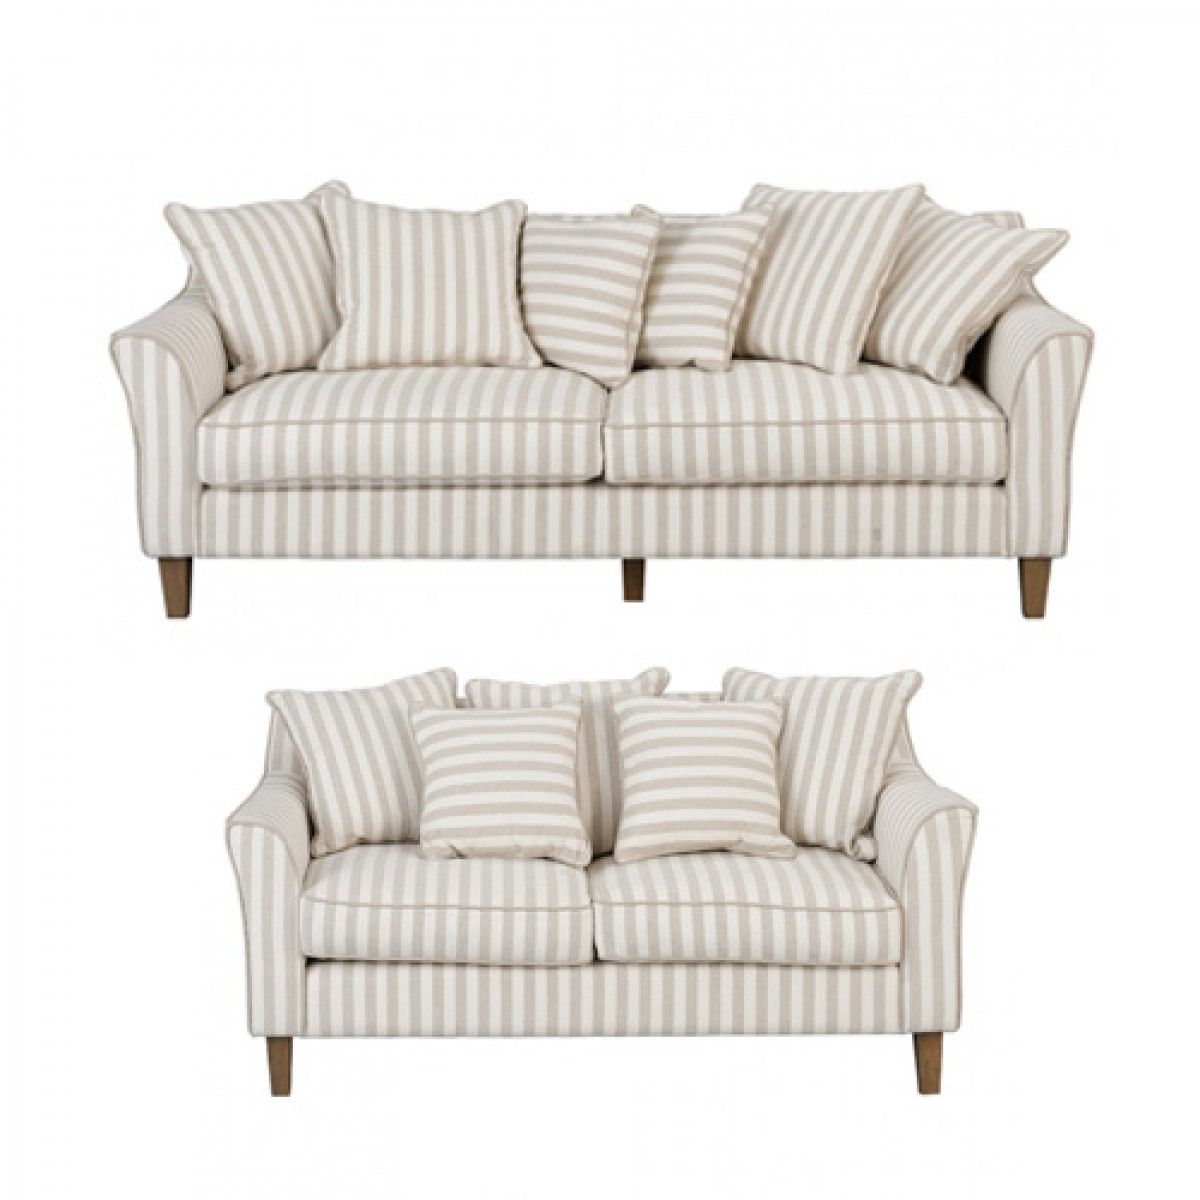 Florian 3 2 Seater Sofa Package Packages Upholstery